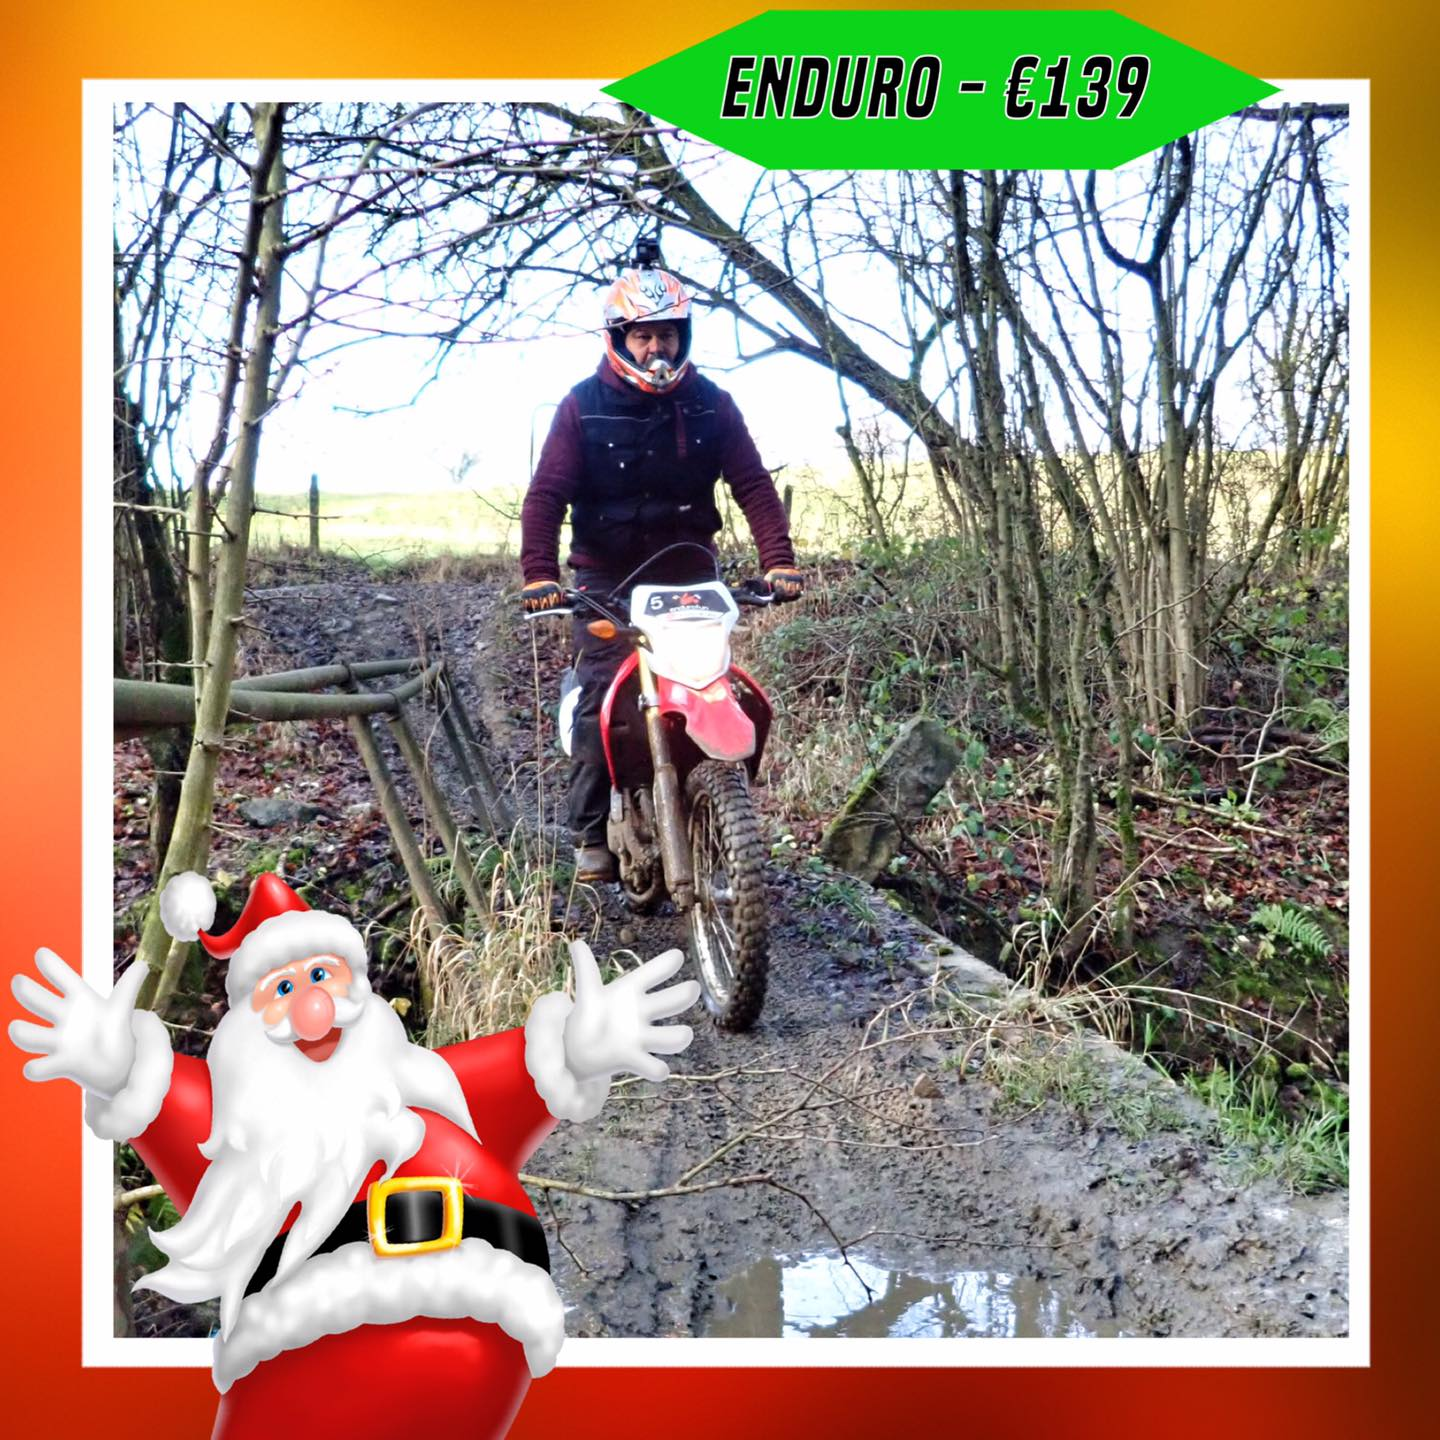 Kerst-initiaties Bilstain Endurofun 13